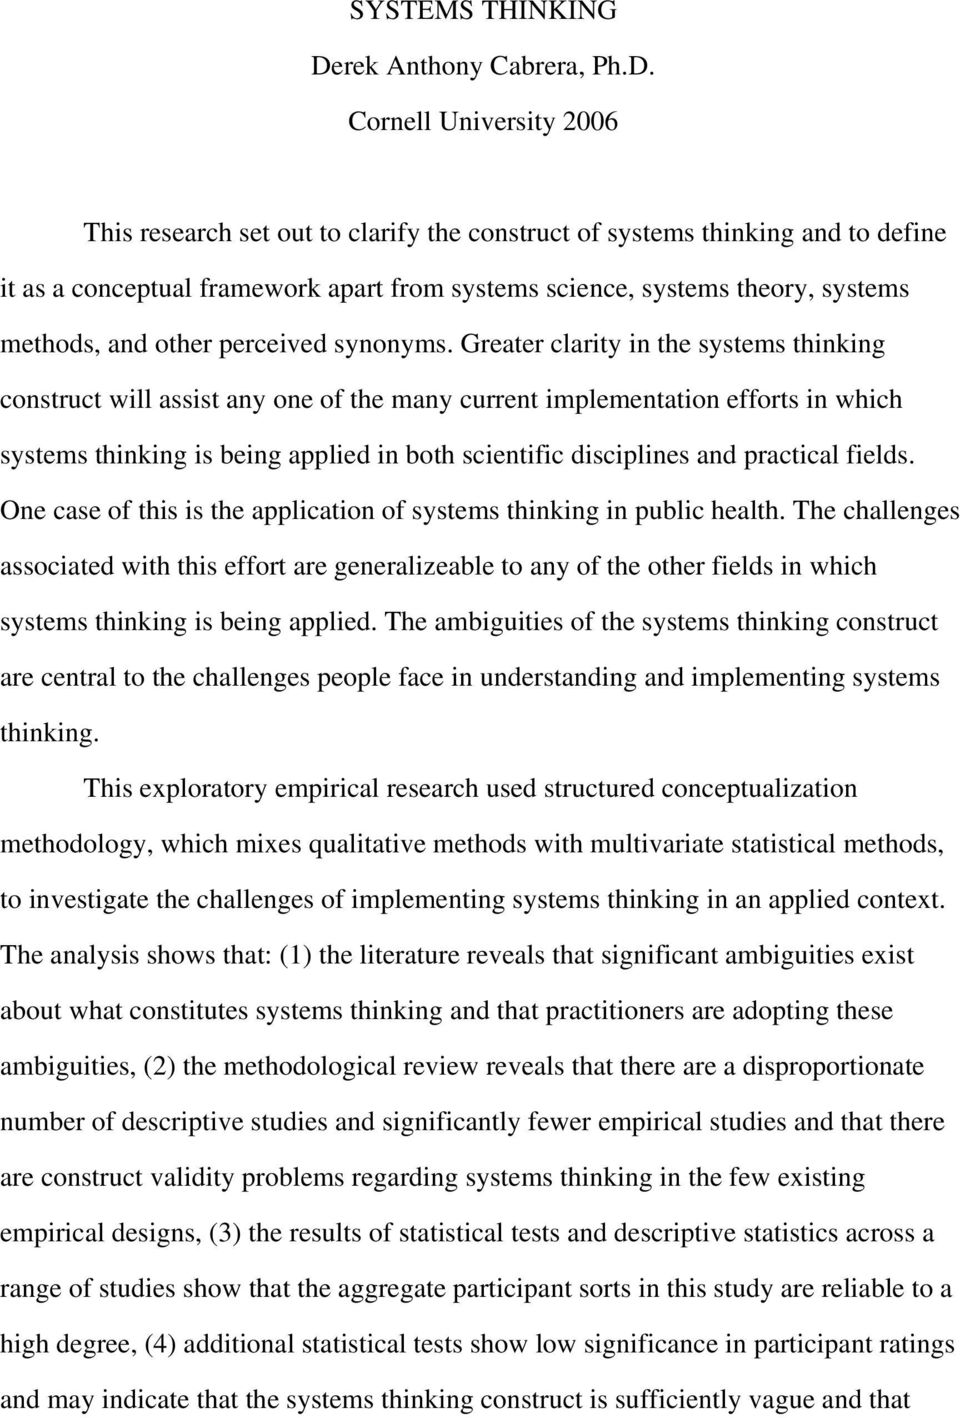 Cornell University 2006 This research set out to clarify the construct of systems thinking and to define it as a conceptual framework apart from systems science, systems theory, systems methods, and